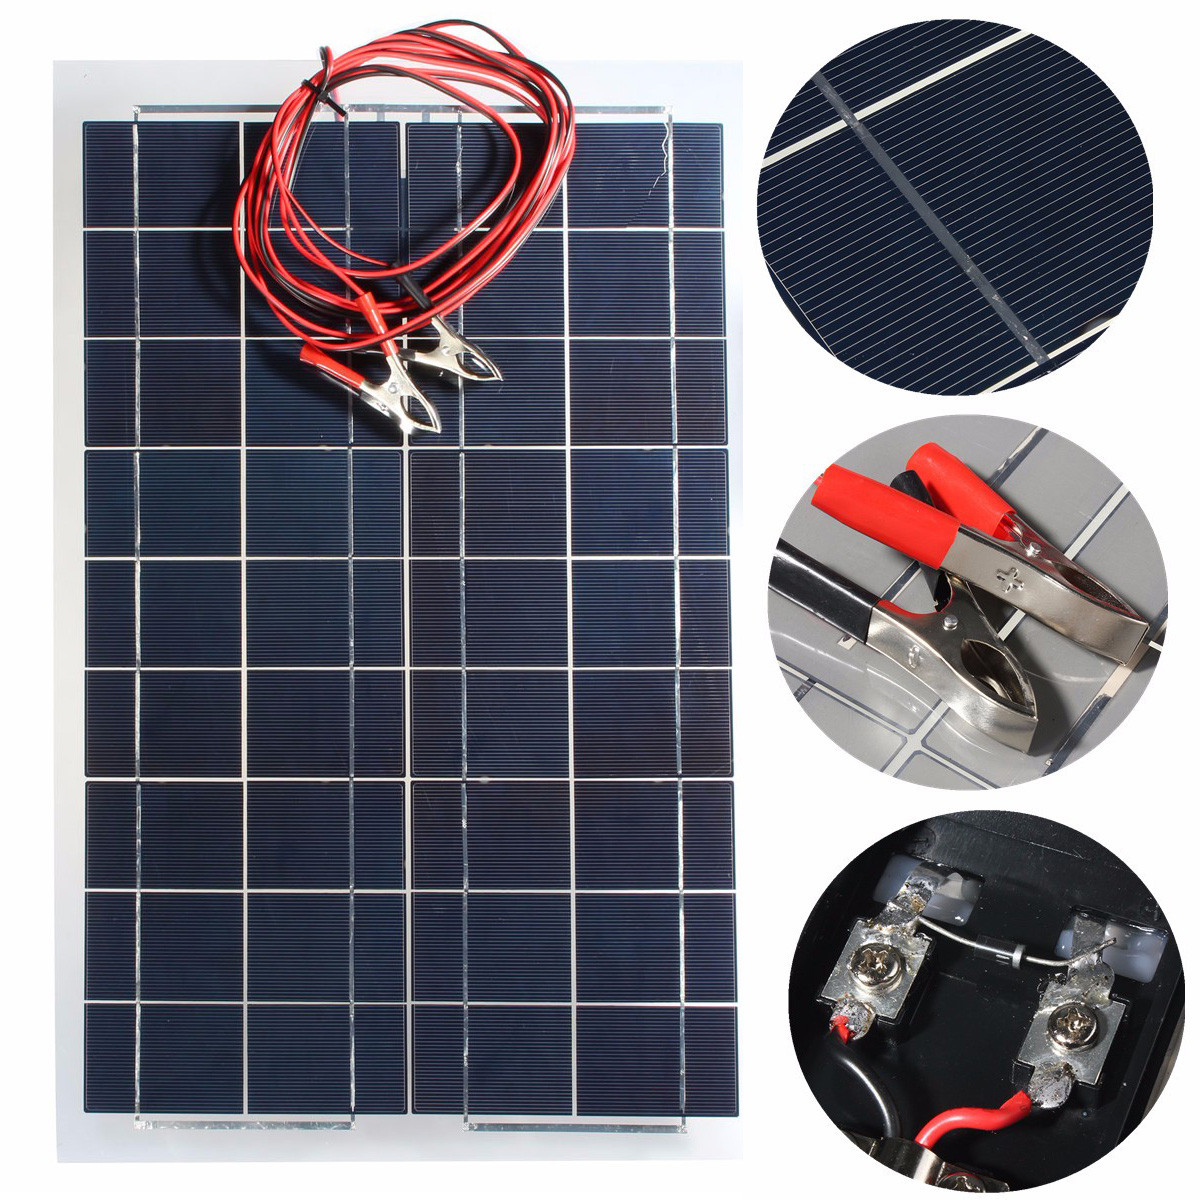 30W 18V Solar Panel PolyCrystalline Solar Cells DIY Battery Charger With Alligator Clip Wire For Car RV Boat Camping Energy